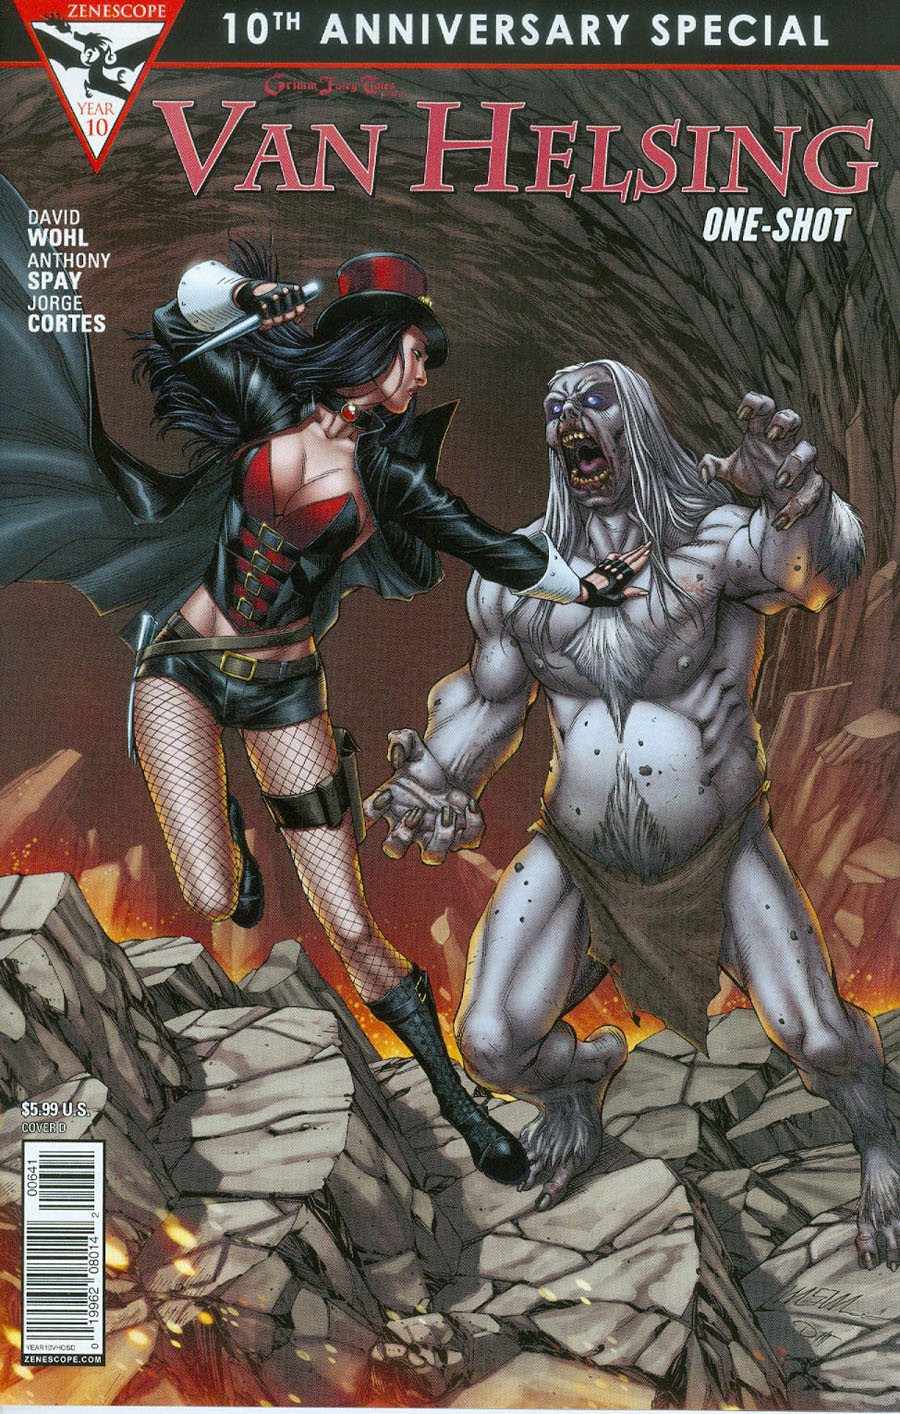 Grimm Fairy Tales Presents 10th Anniversary Special #6 Van Helsing Cover D Mike S Miller